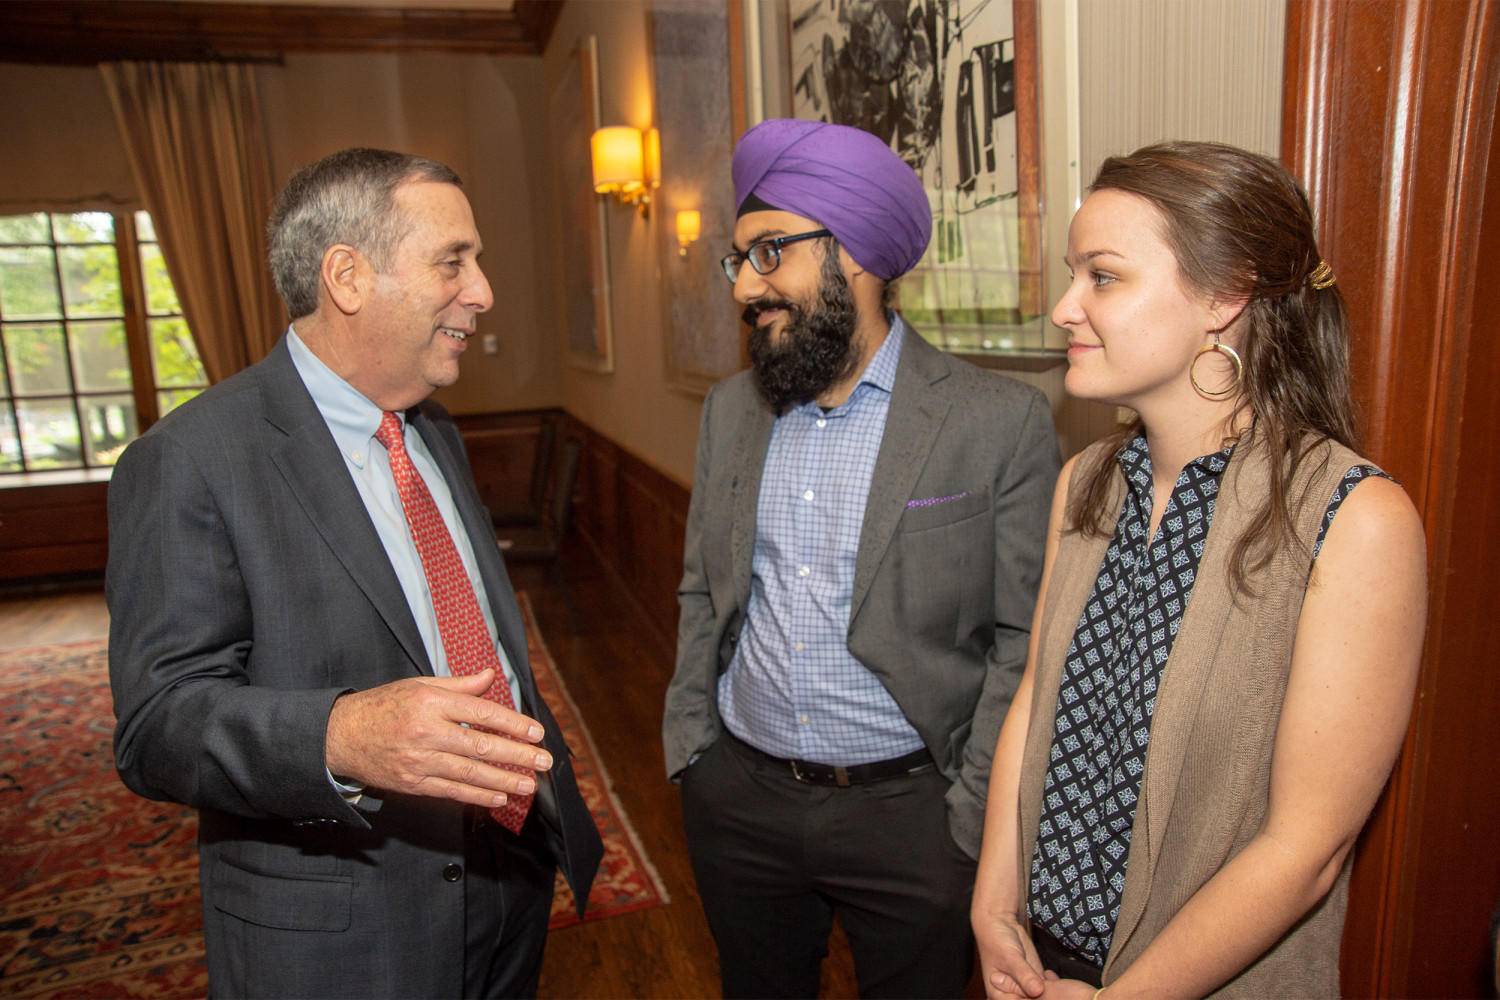 President Larry Bacow, Harmann Singh, and Sarah Bourland